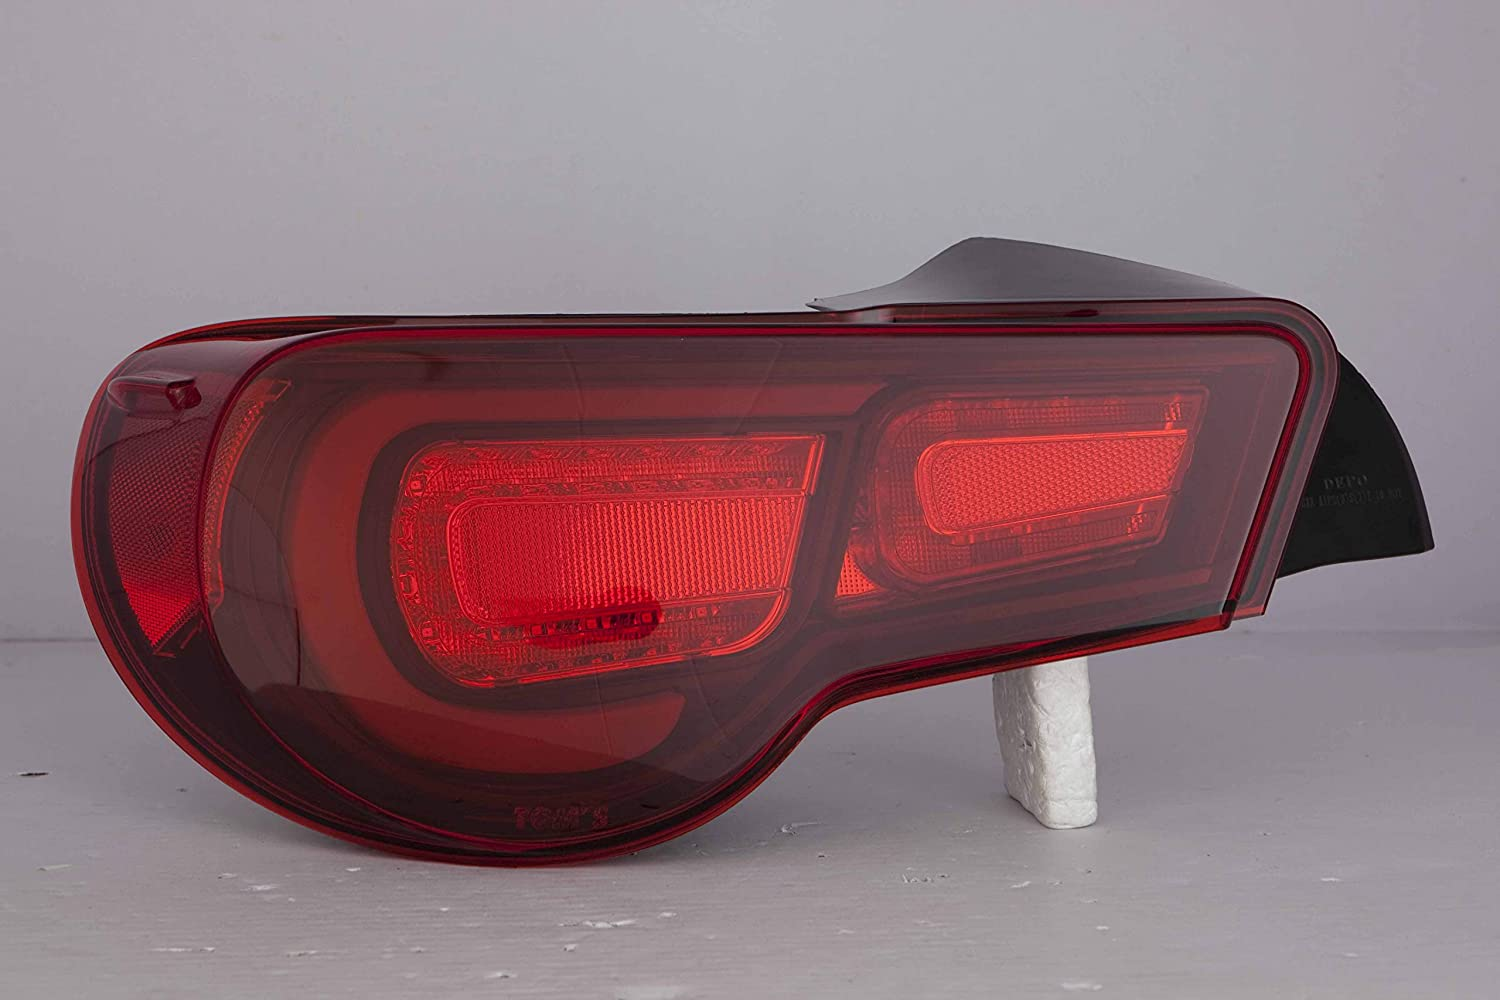 JP Auto Outer Tail Light Compatible With Scion Frs Subaru Brz 2013 Driver Left And Passenger Right Side Pair Set Taillamp